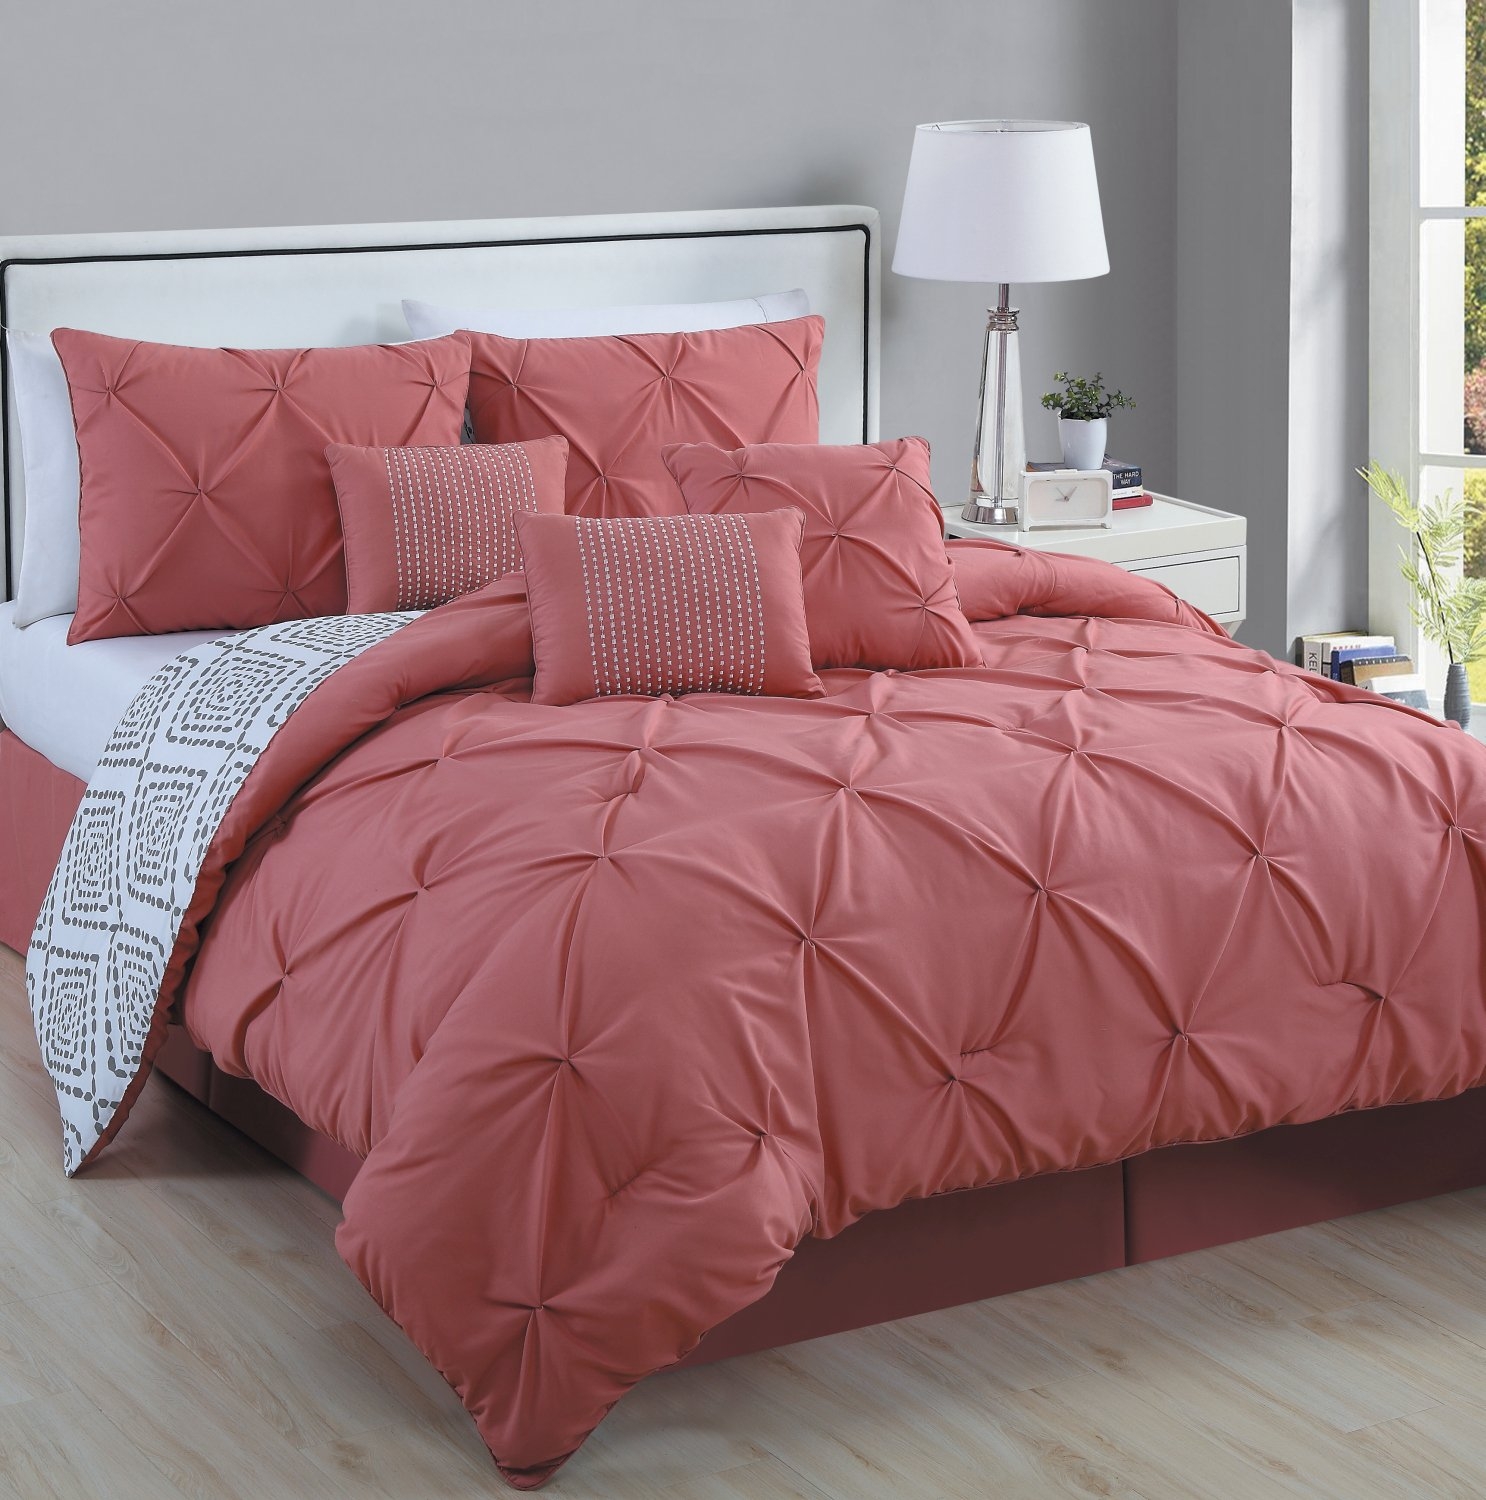 pinched stylewesome excellentnd pinch heart sets comforter ease set with queen black excellent white striped sheets pleat bedding and style